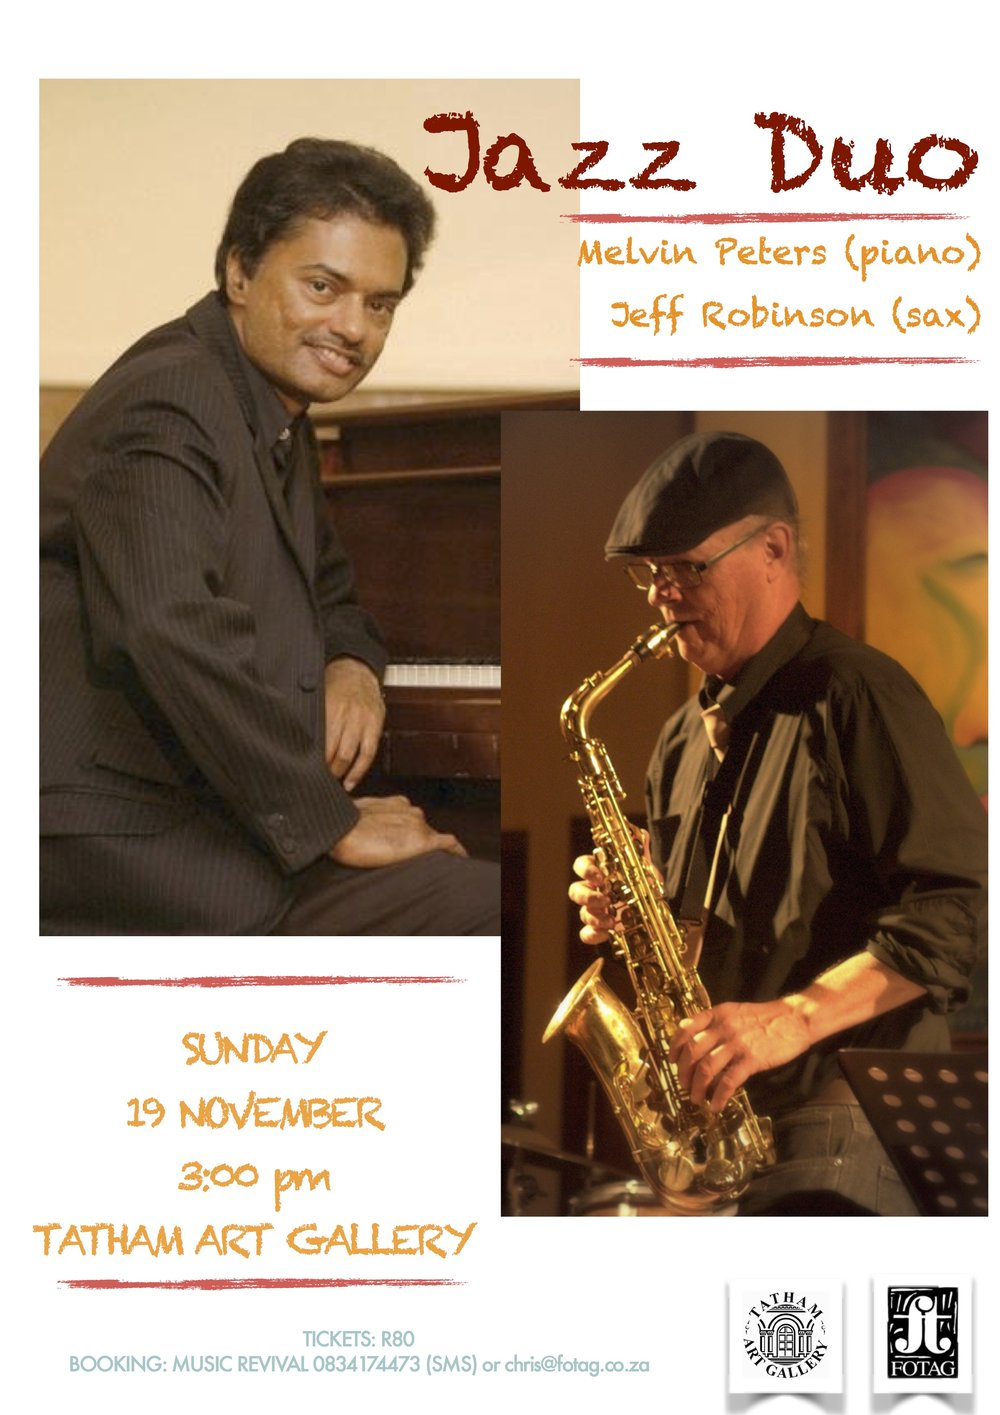 JAZZ DUO TAG NOV 17 copy.jpg